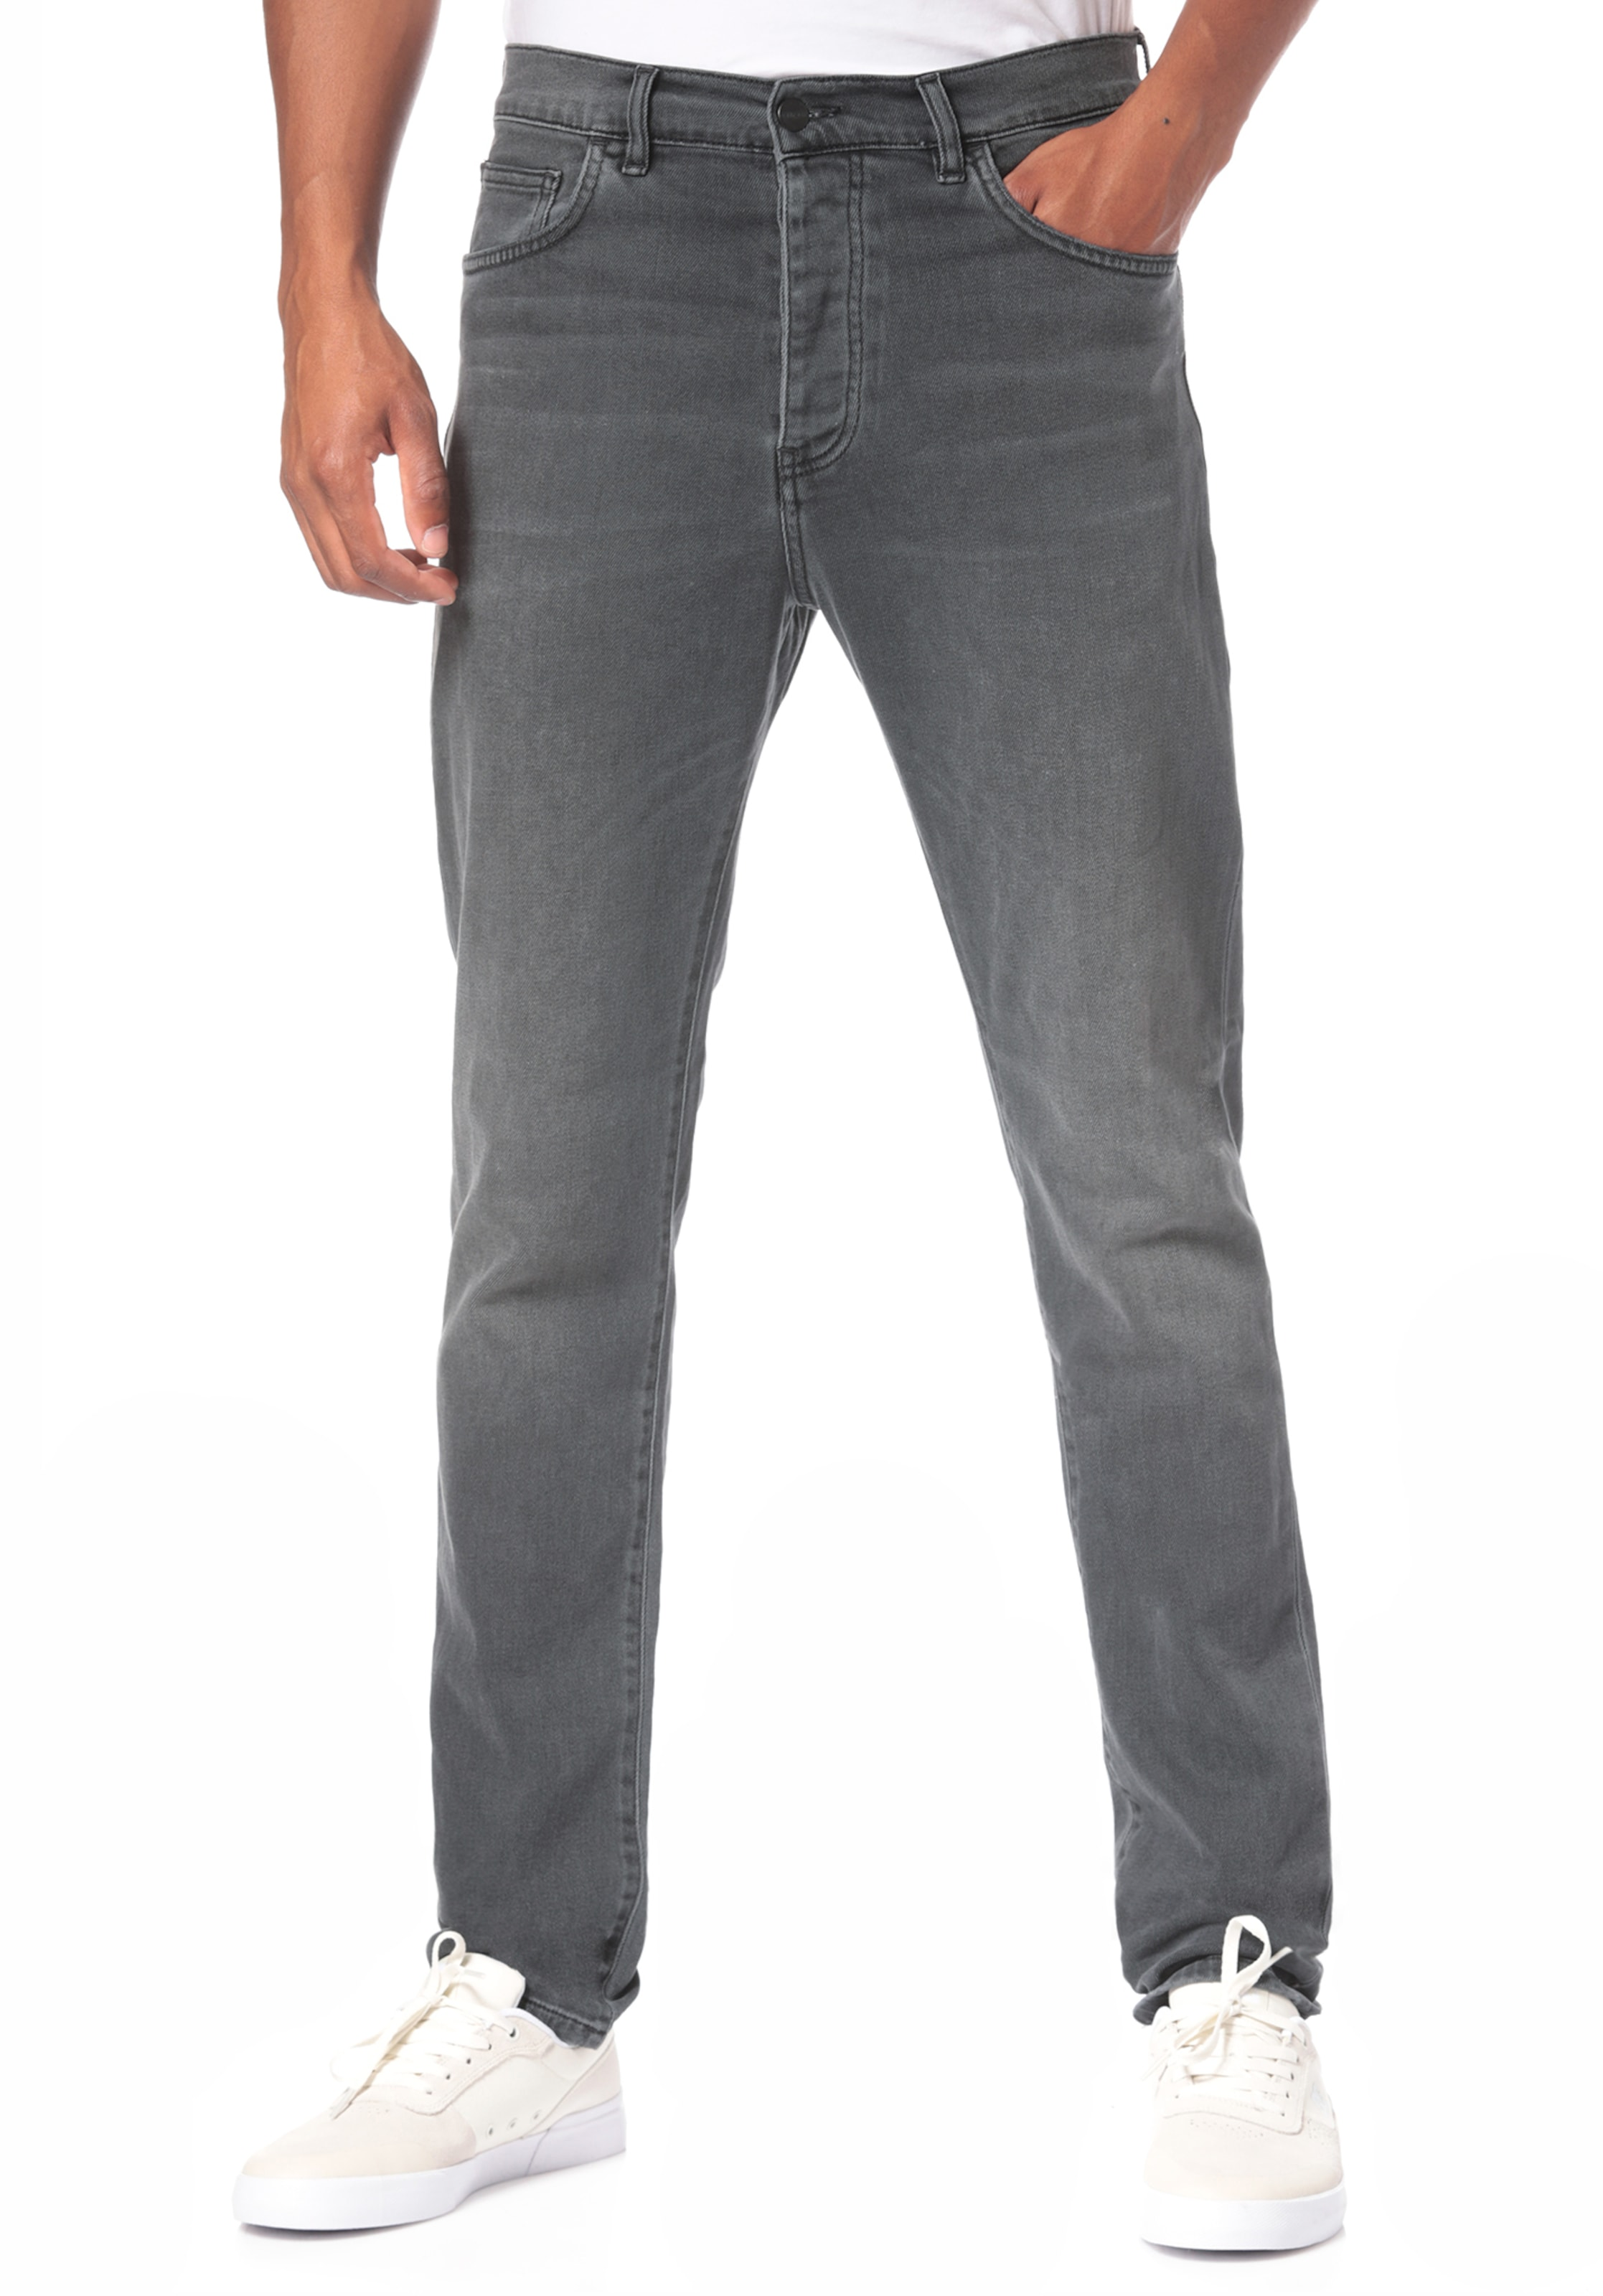 Carhartt Wip Jeans Grey Denim Coast In zLpGqMVSU